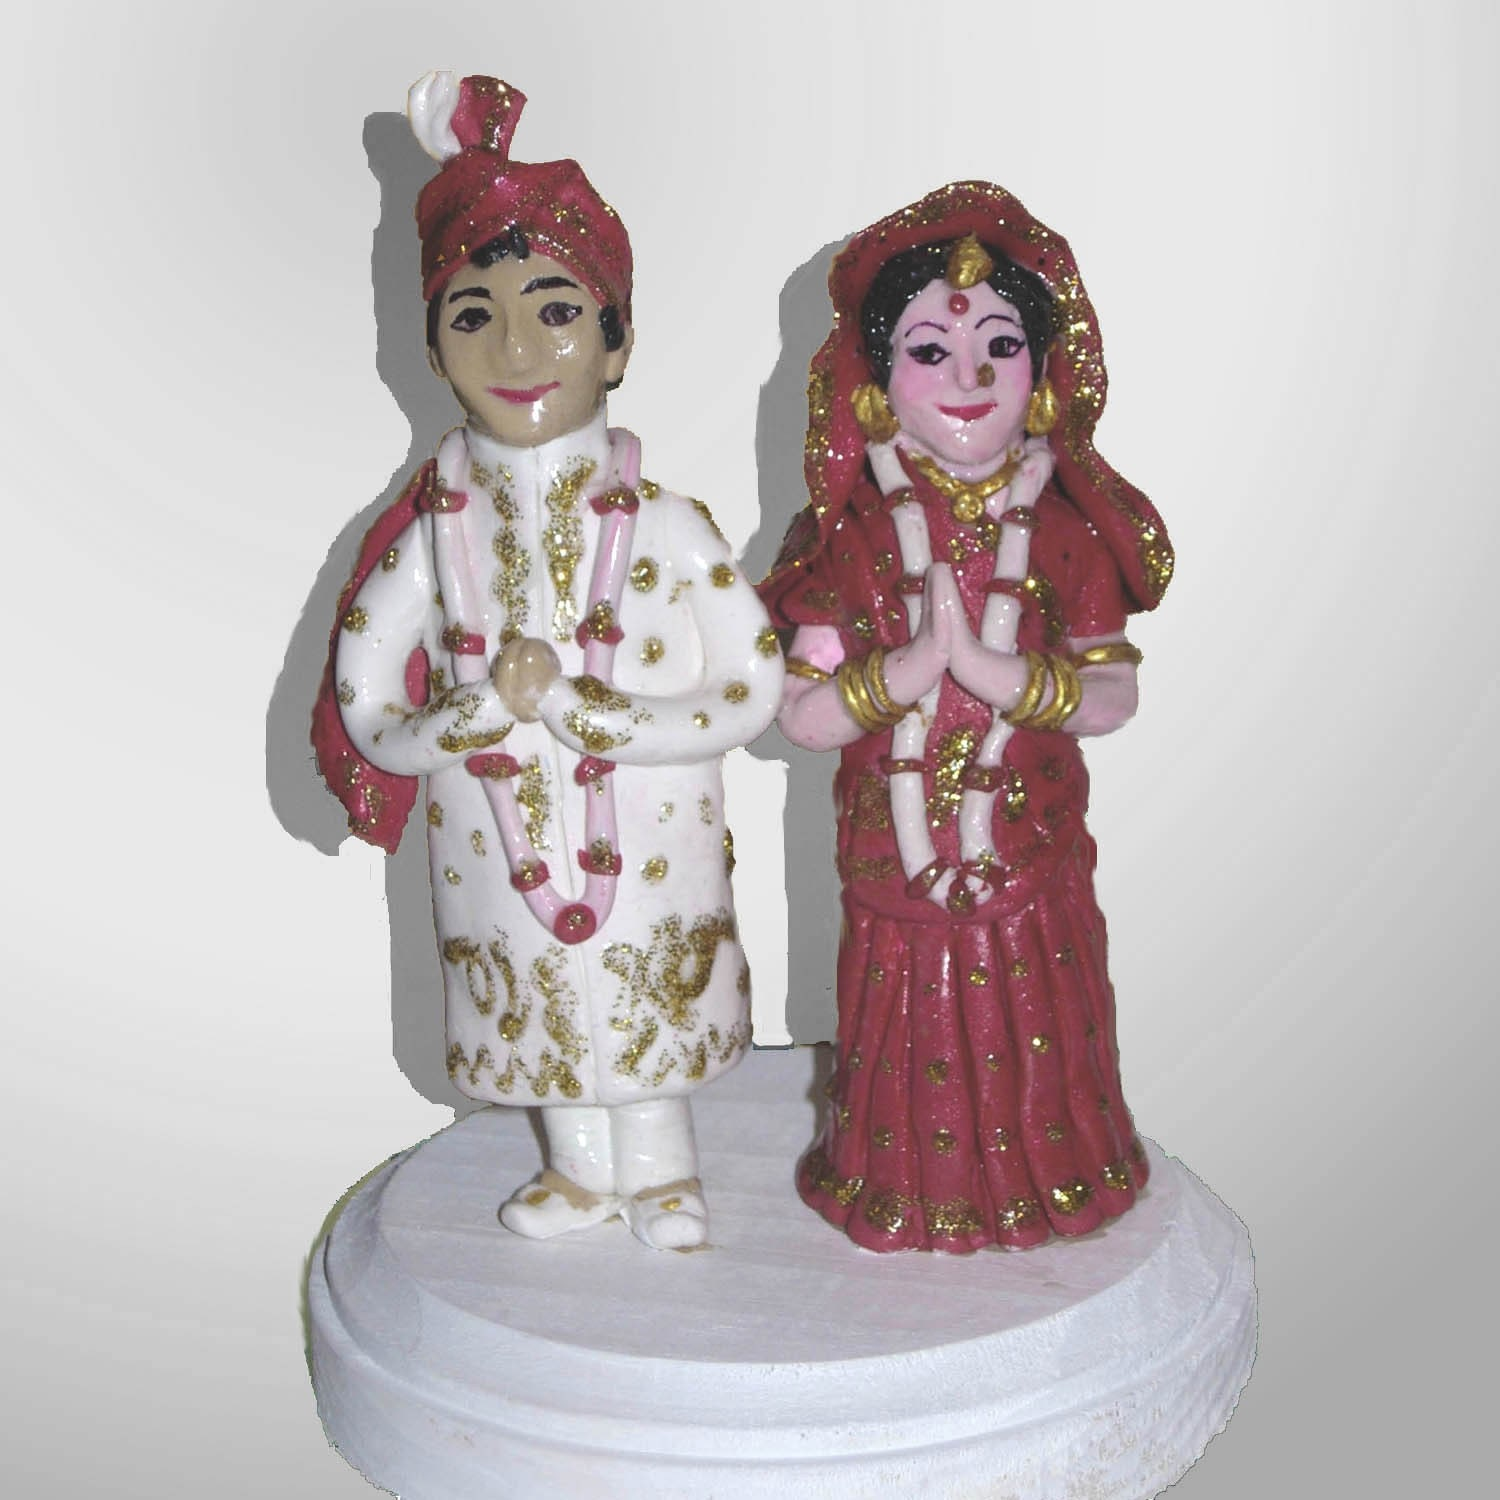 Indian Bride Groom Wedding Cake Topper Custom Made To Order